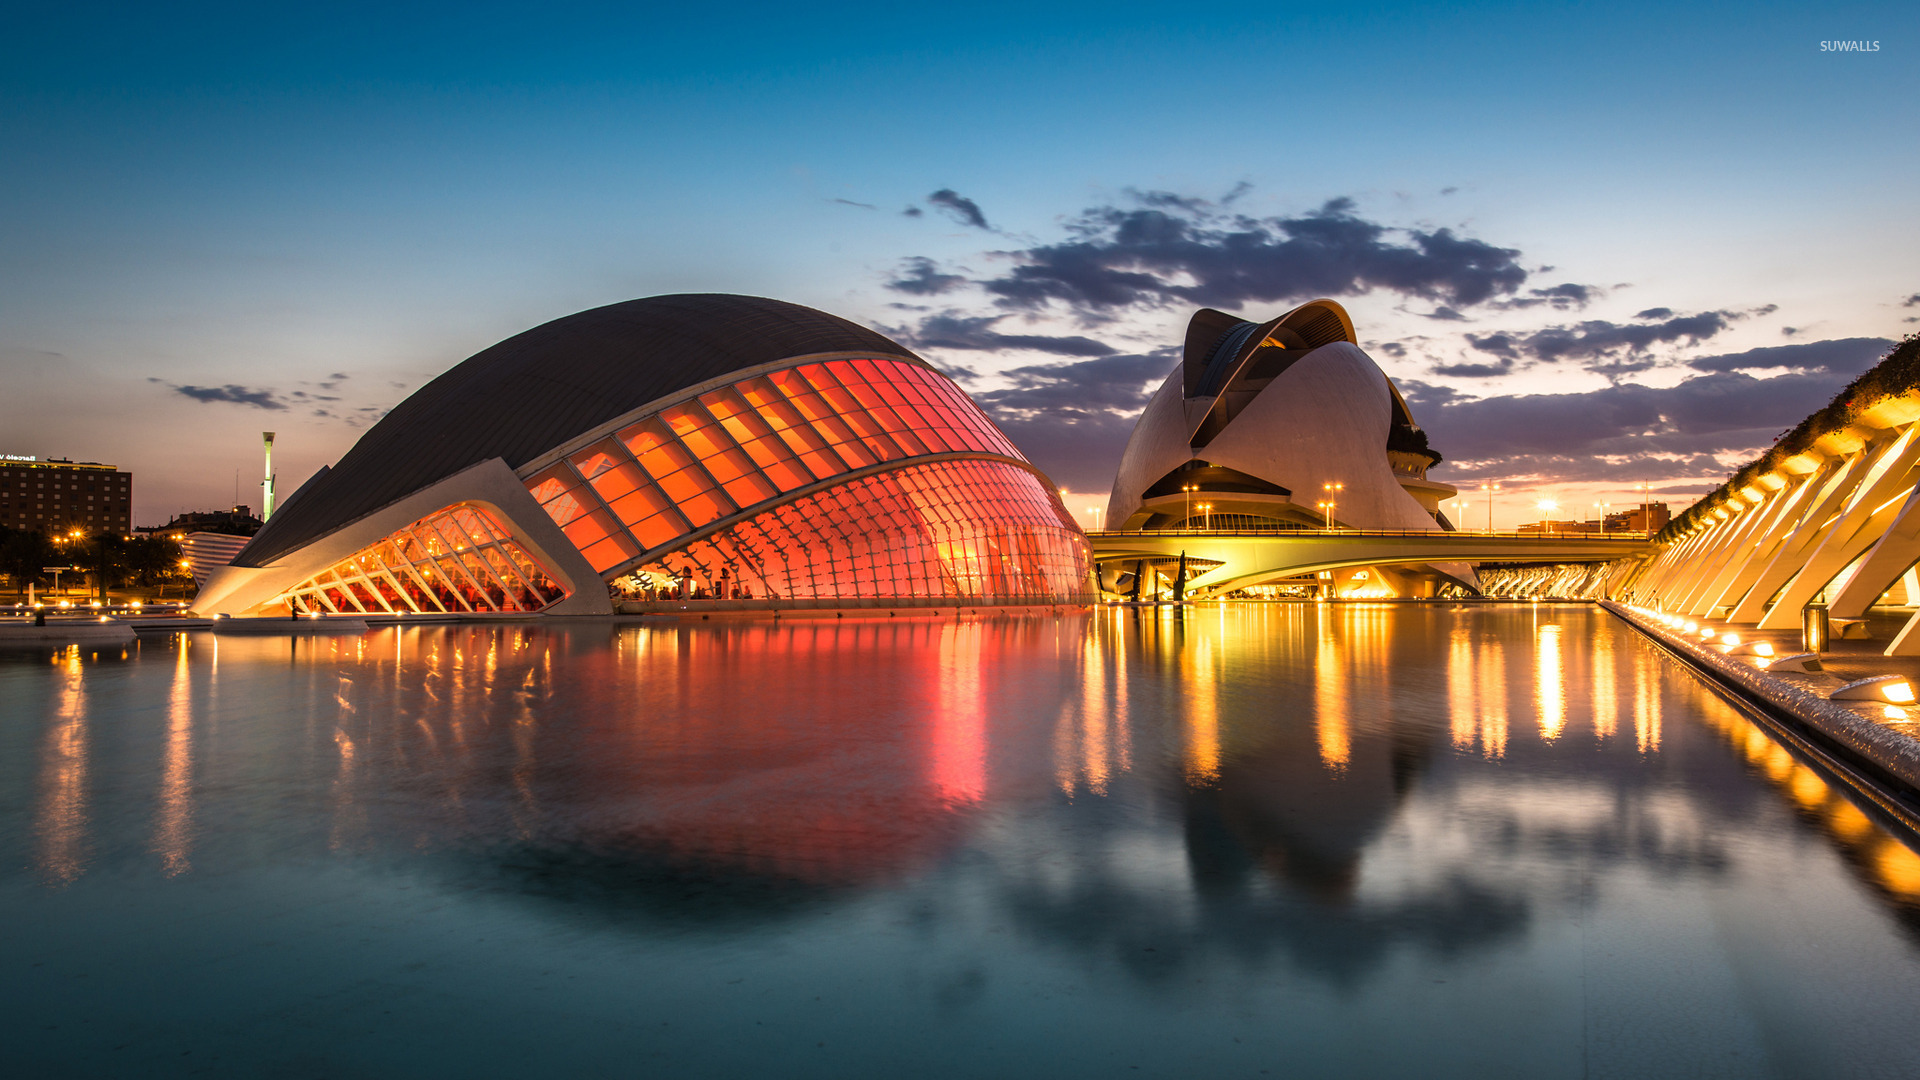 valencia wallpaper world wallpapers 23371 free music vector graphics free music vector icons